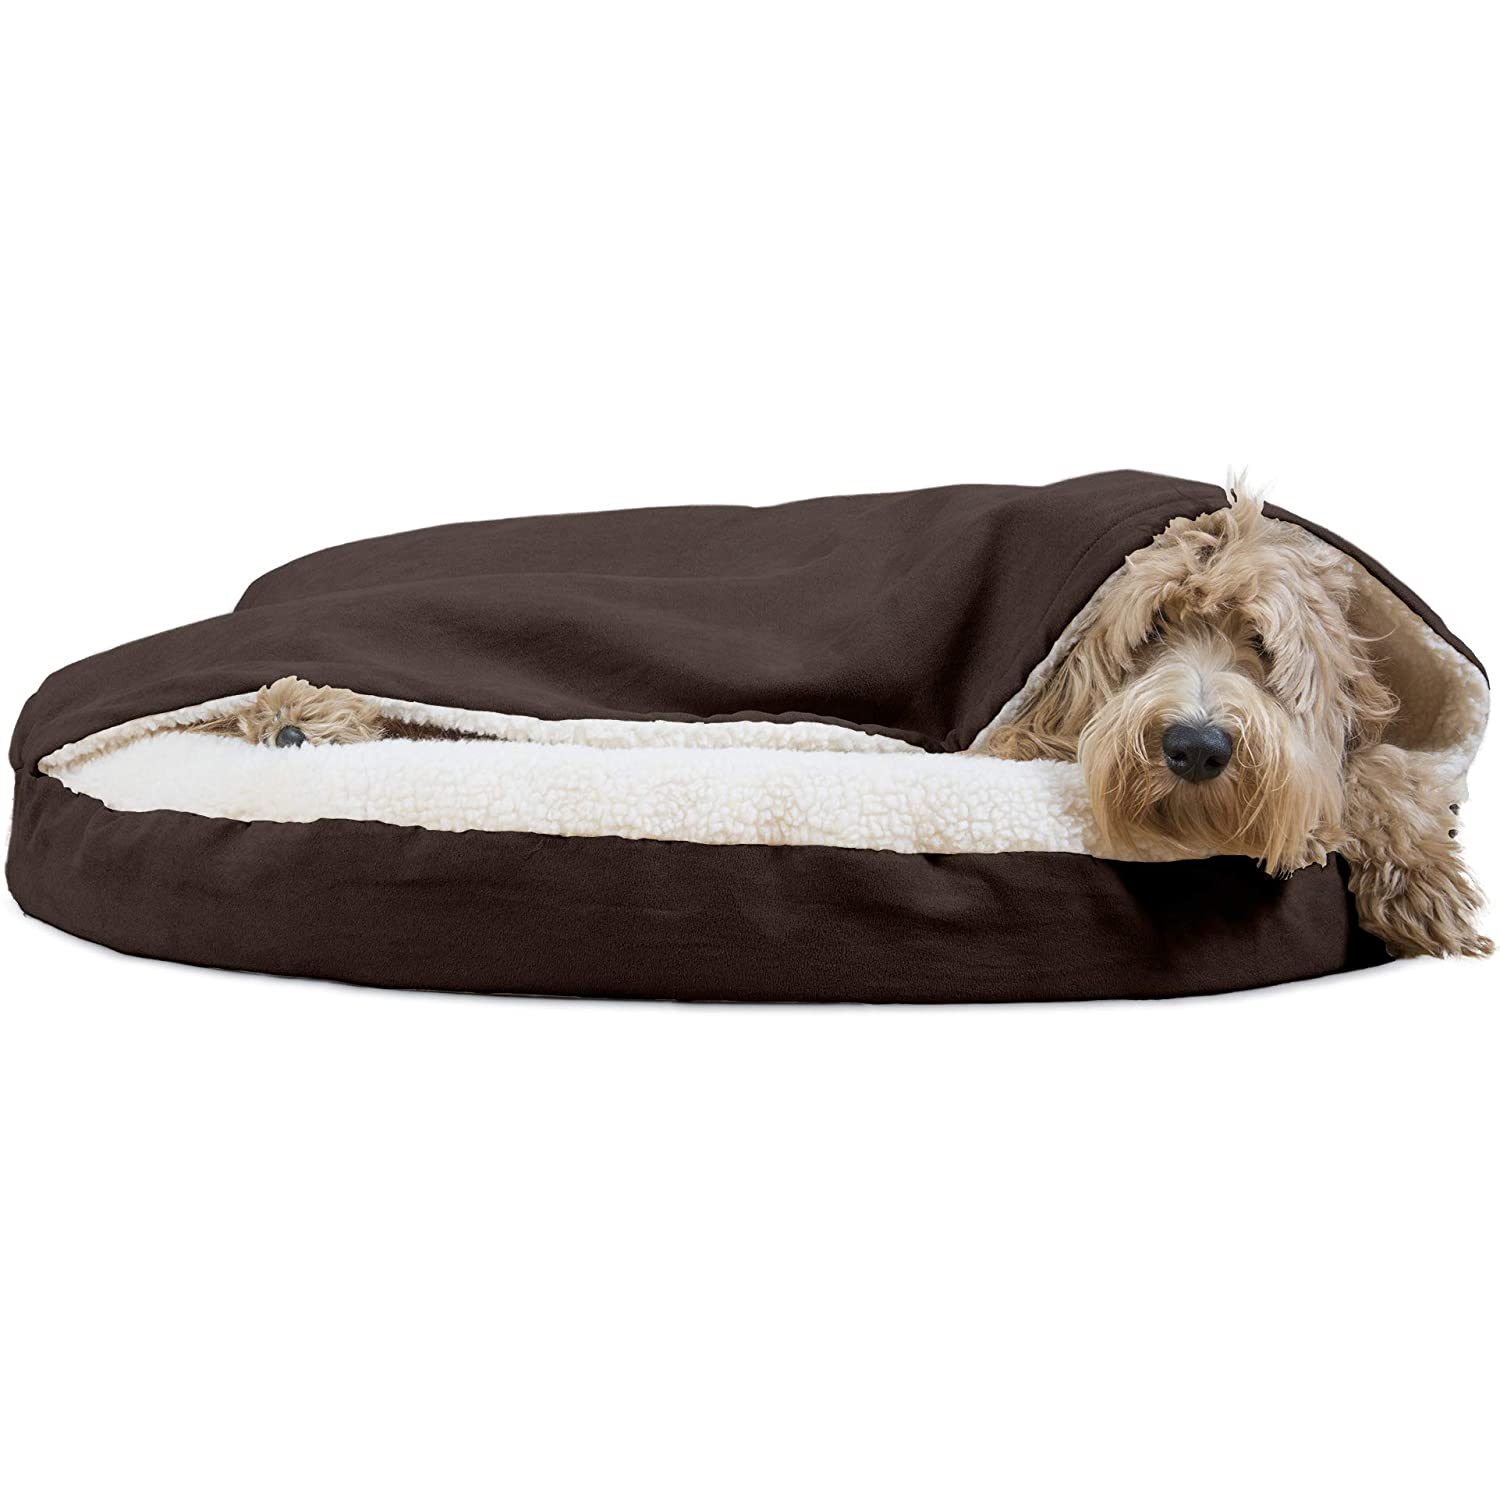 Furhaven Dog Bed with Orthopedic Round Cuddle Blanket